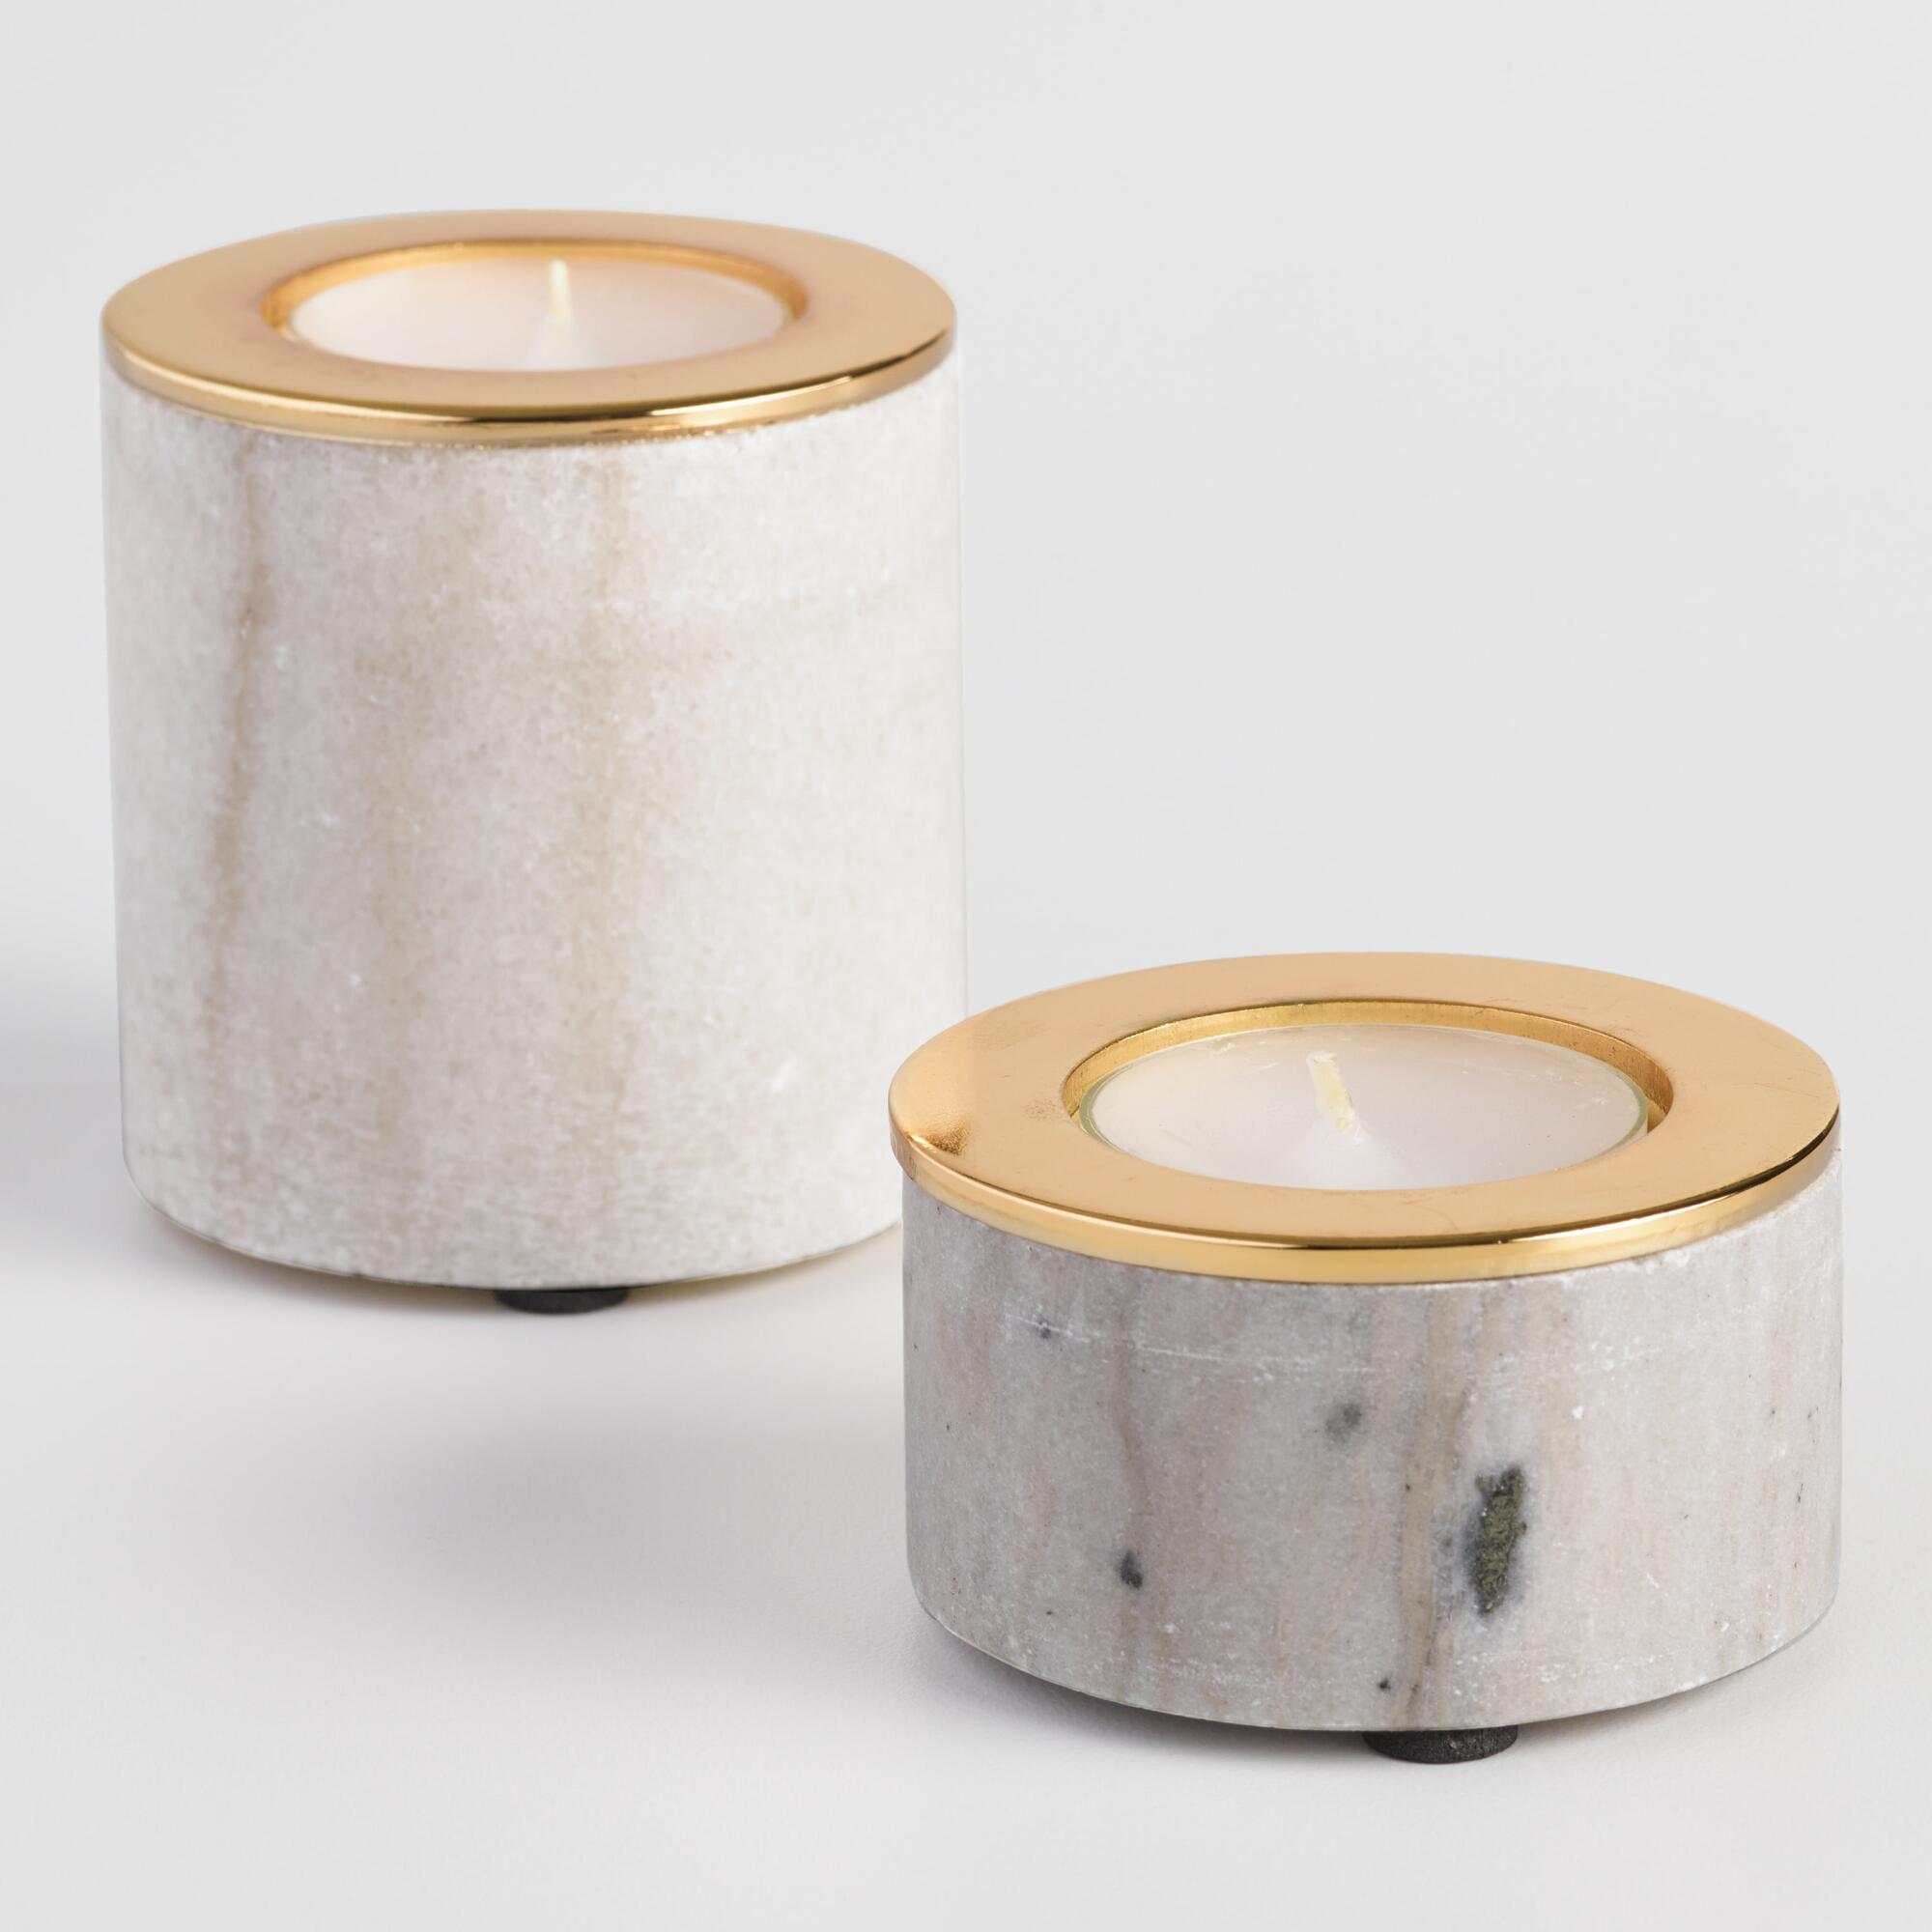 White Marble Tealight Candleholder - Small by World Market Small